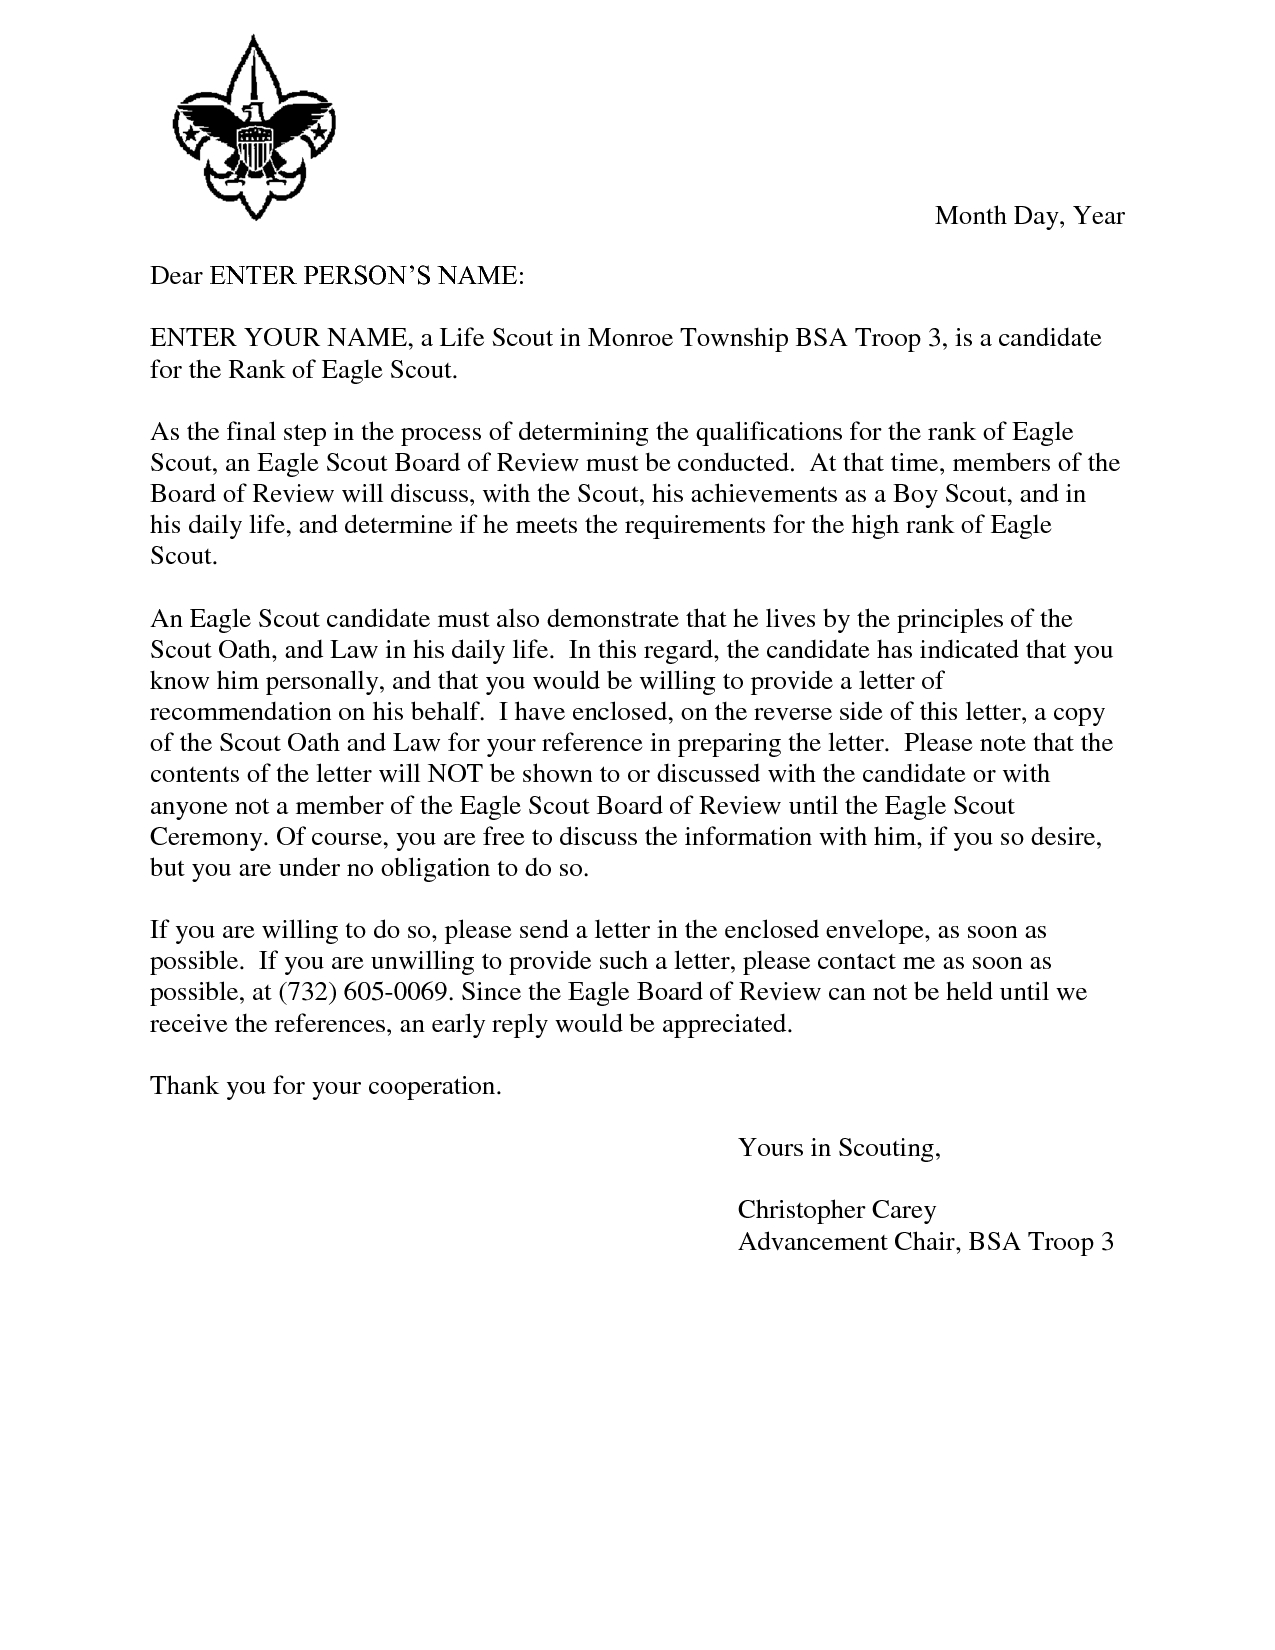 Letter Of Recommendation for Yourself Template - Boy Scout Letter Of Re Mendation for Eagle Scout Acurnamedia